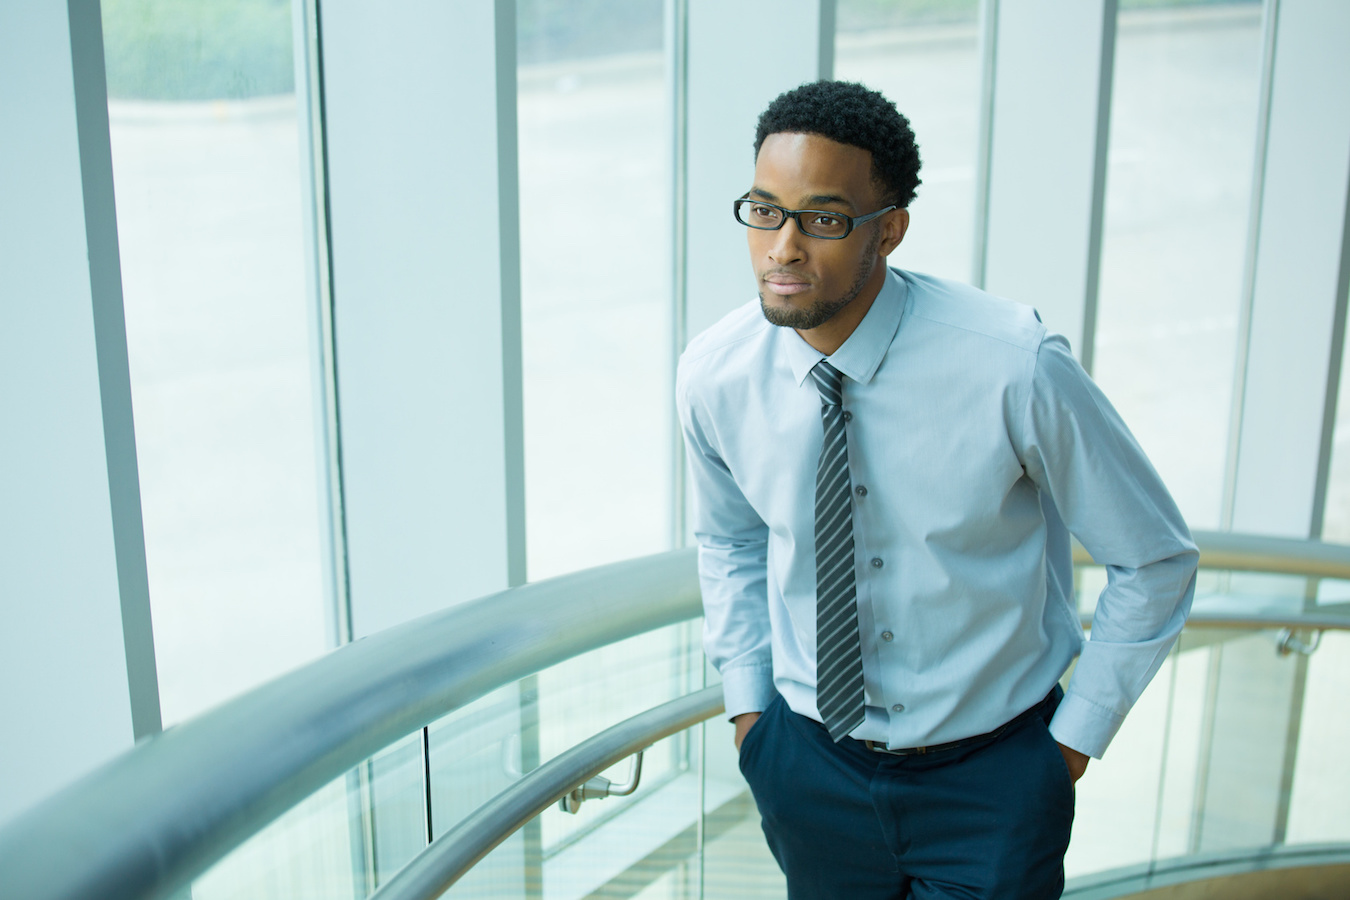 Addressing Hurdles to Academic Success for Minority Males